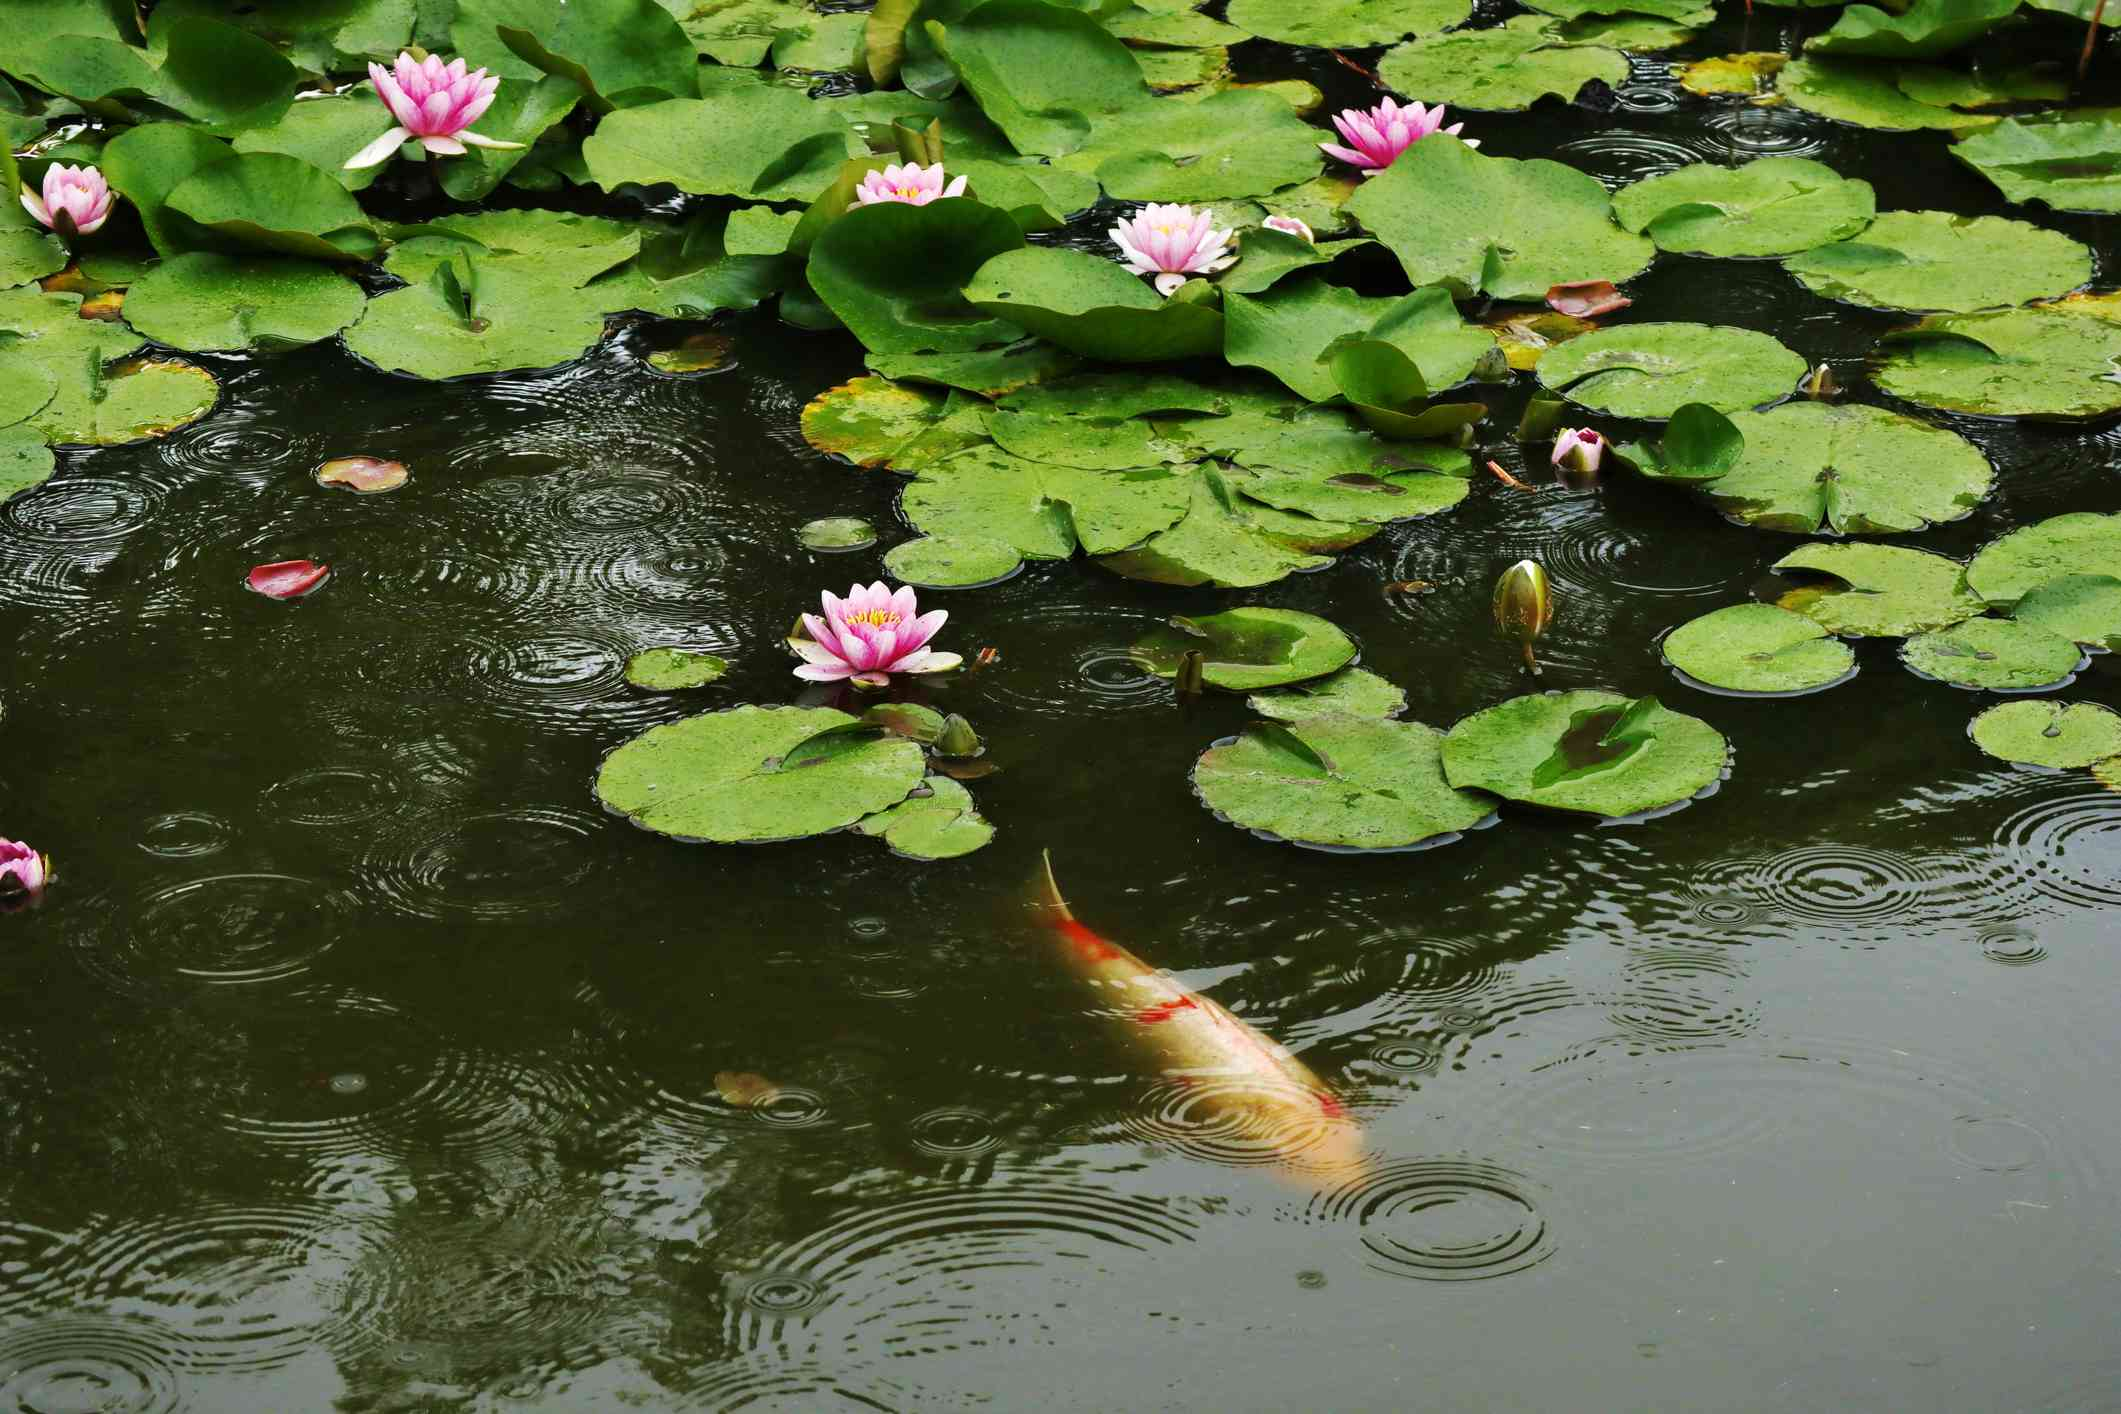 A koi fish swimming under green lily pads.